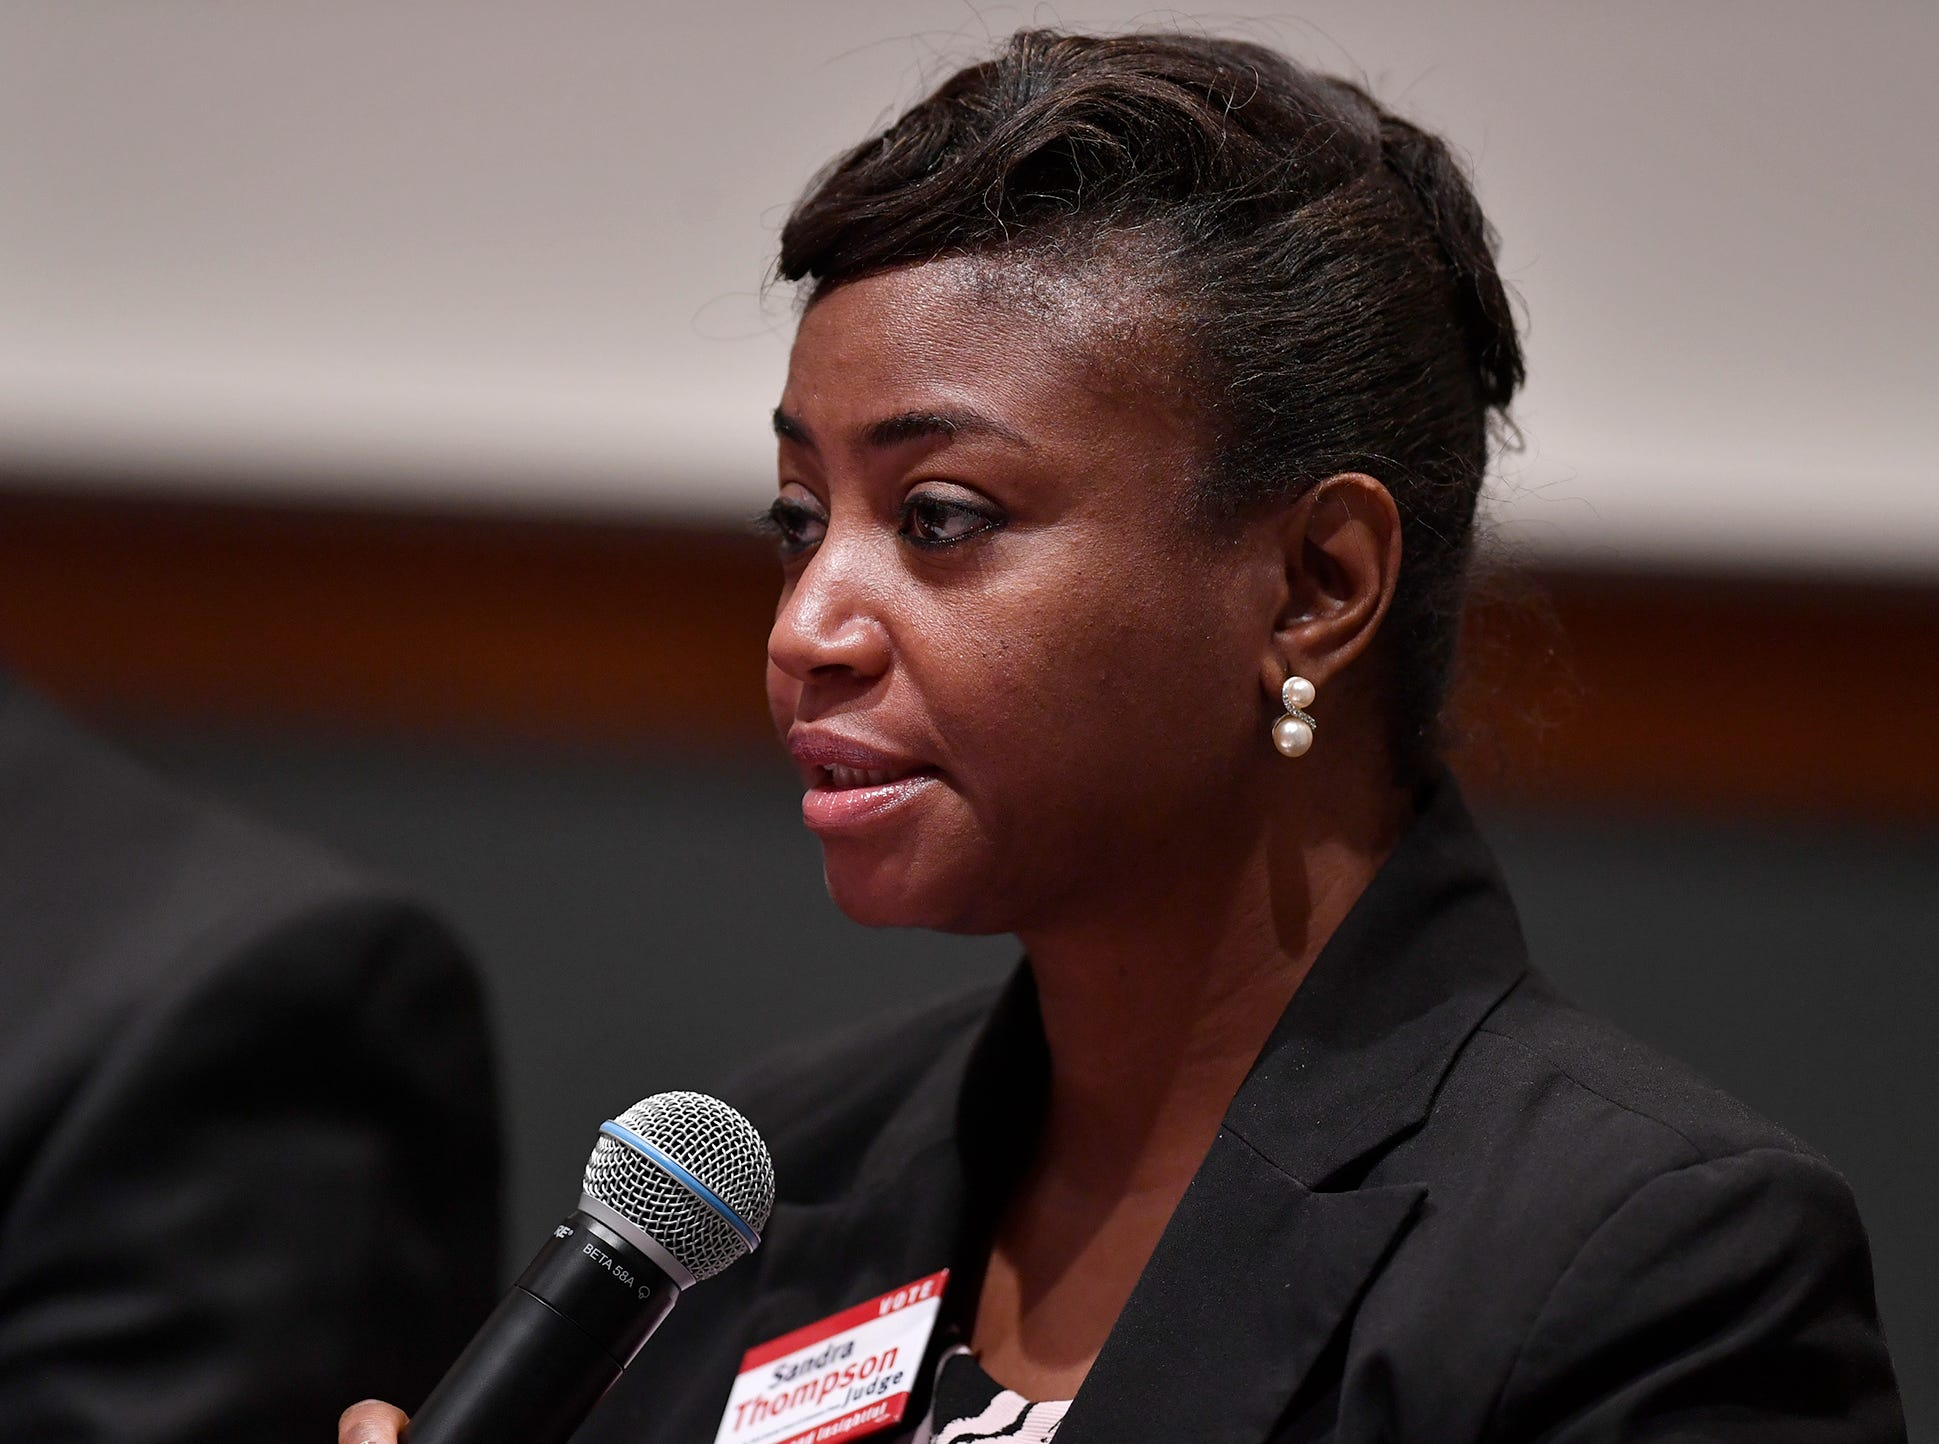 Sandra Thompson, (D) candidate for Judge Court of Common Pleas, takes part in the York Stands Up bipartisan countywide candidates forum in the Weinstock Lecture Hall inside the Willman Business Center at York College, Monday, May 6, 2019.John A. Pavoncello photo